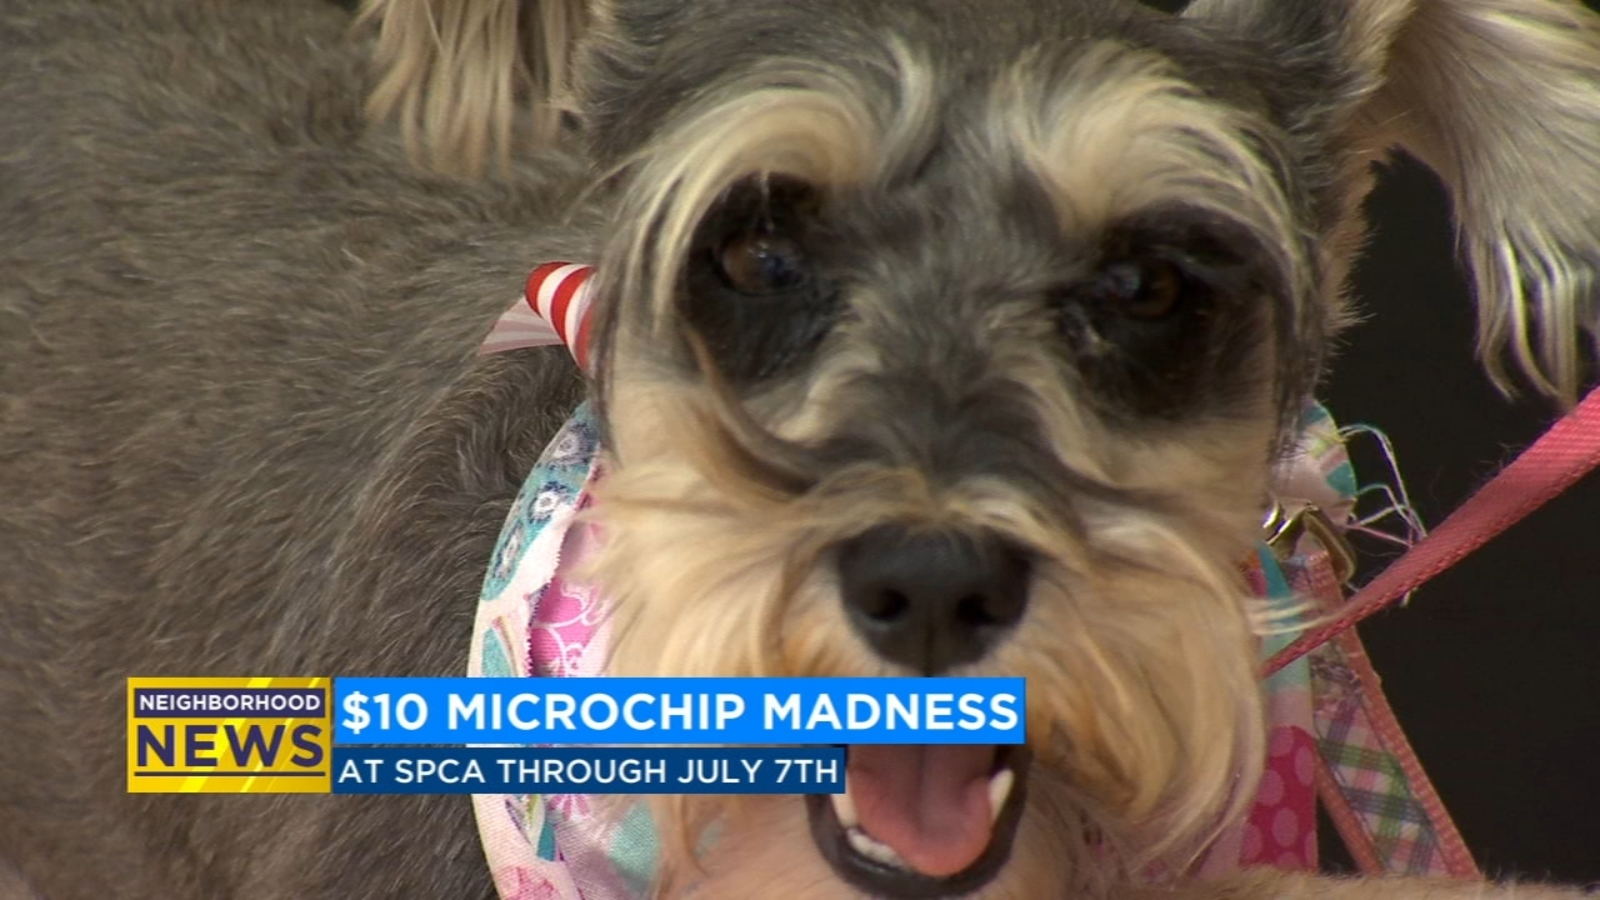 Get your dogs, cats microchipped for $10 at the CCSPCA